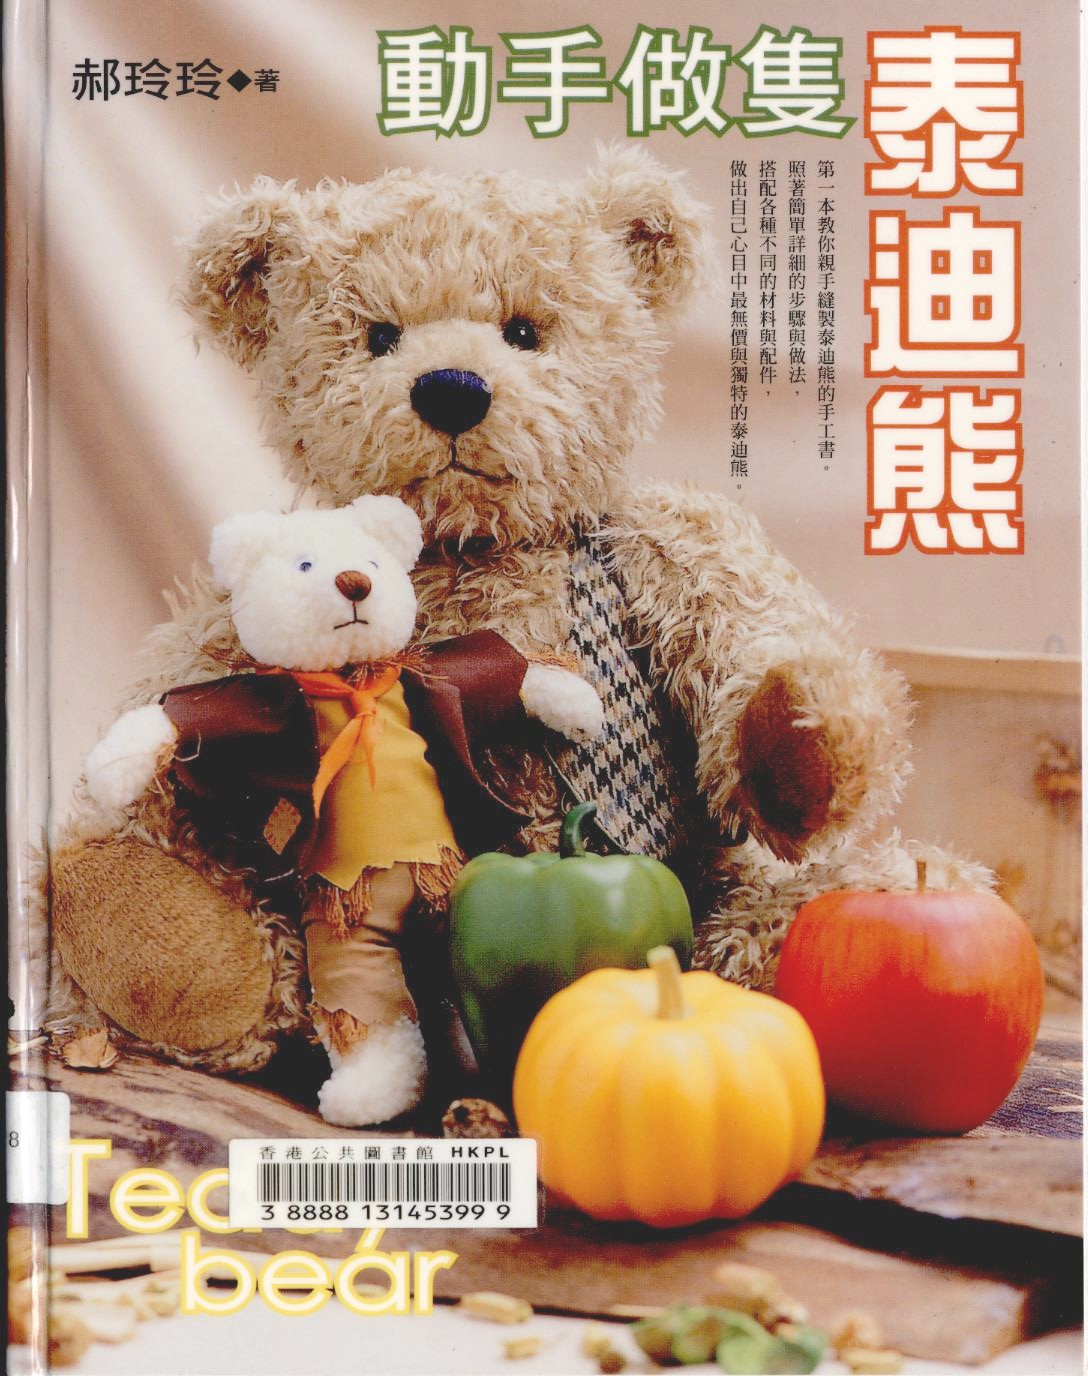 how to say teddy bear in chinese